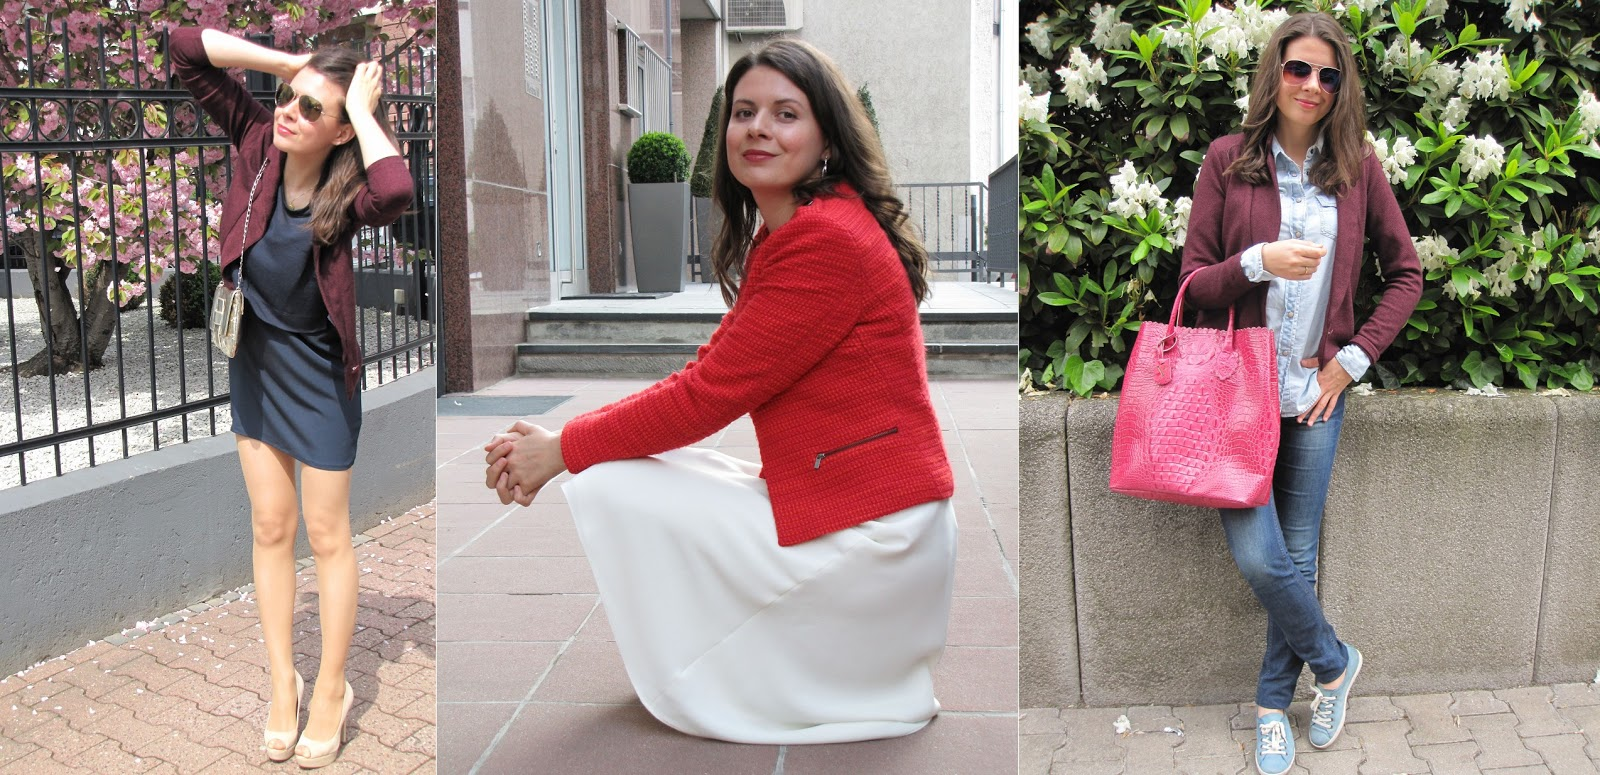 Fashion blogger from Frankfurt am Main